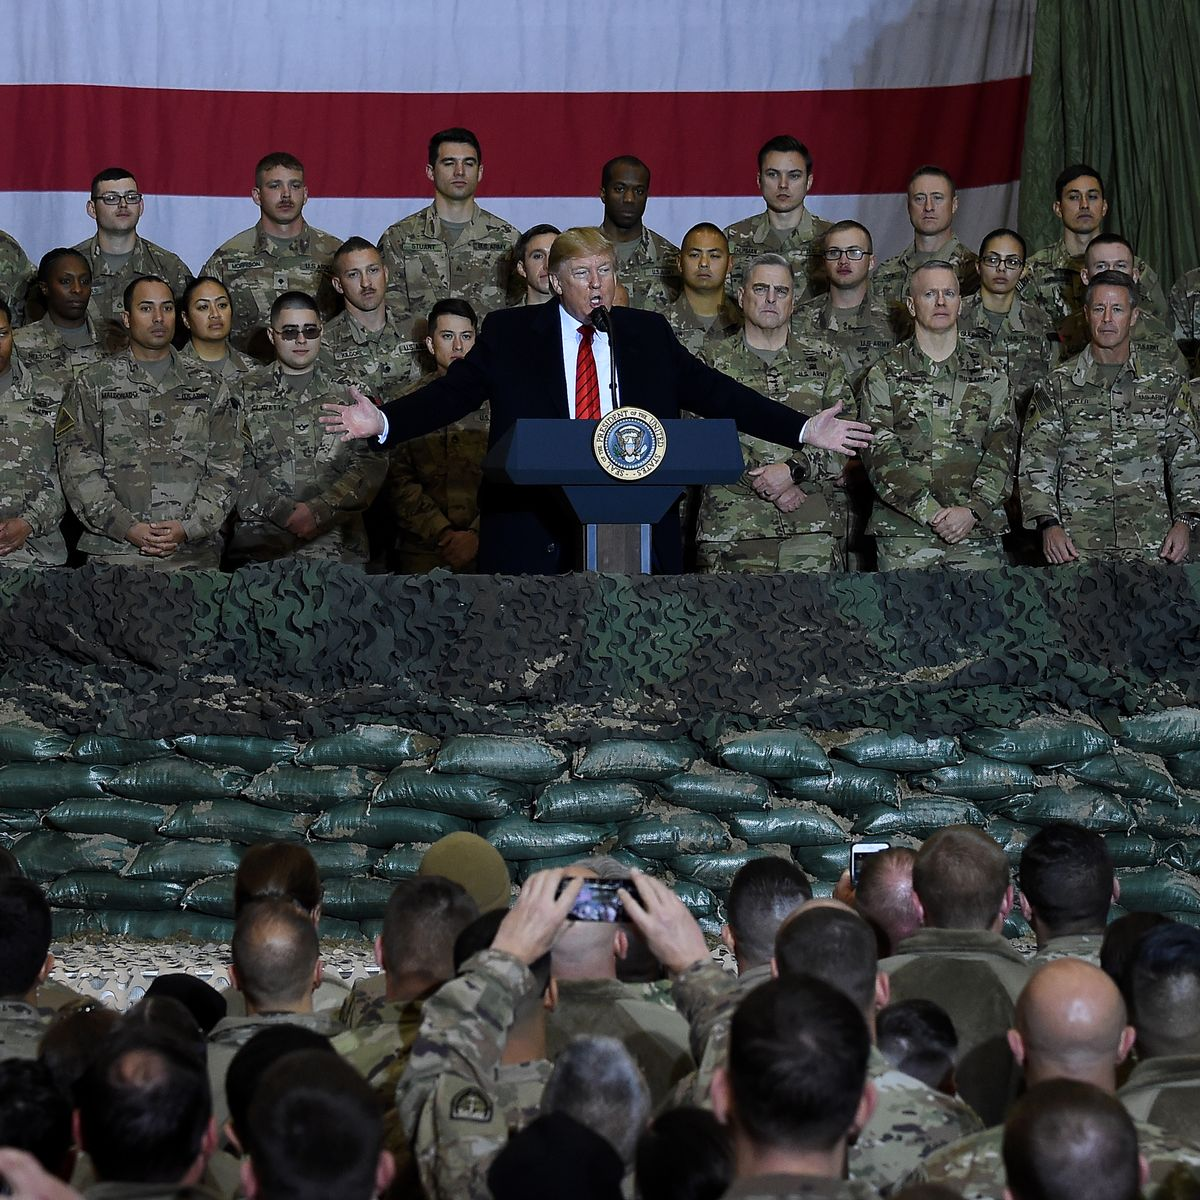 WHAT'S GOING ON WITH THE MILITARY?